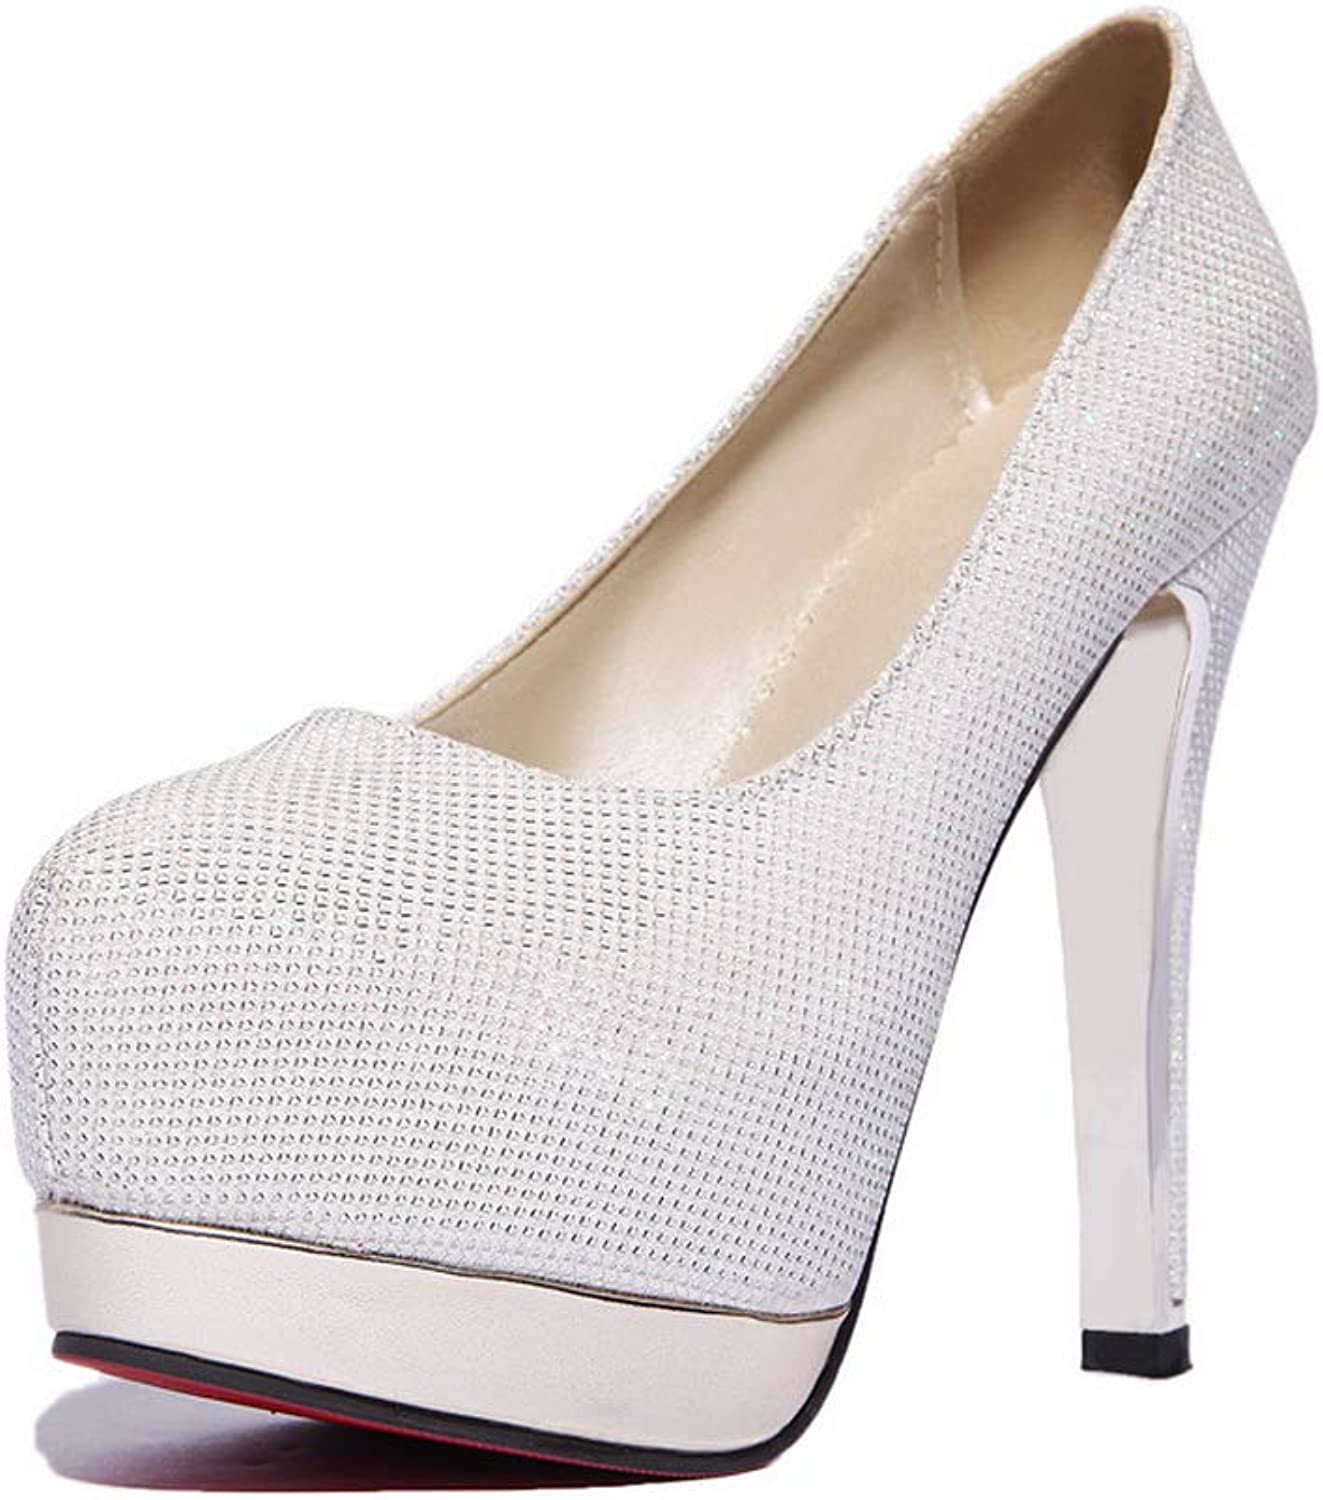 1TO9 Womens Travel Solid Structured Urethane Pumps shoes MMS06335